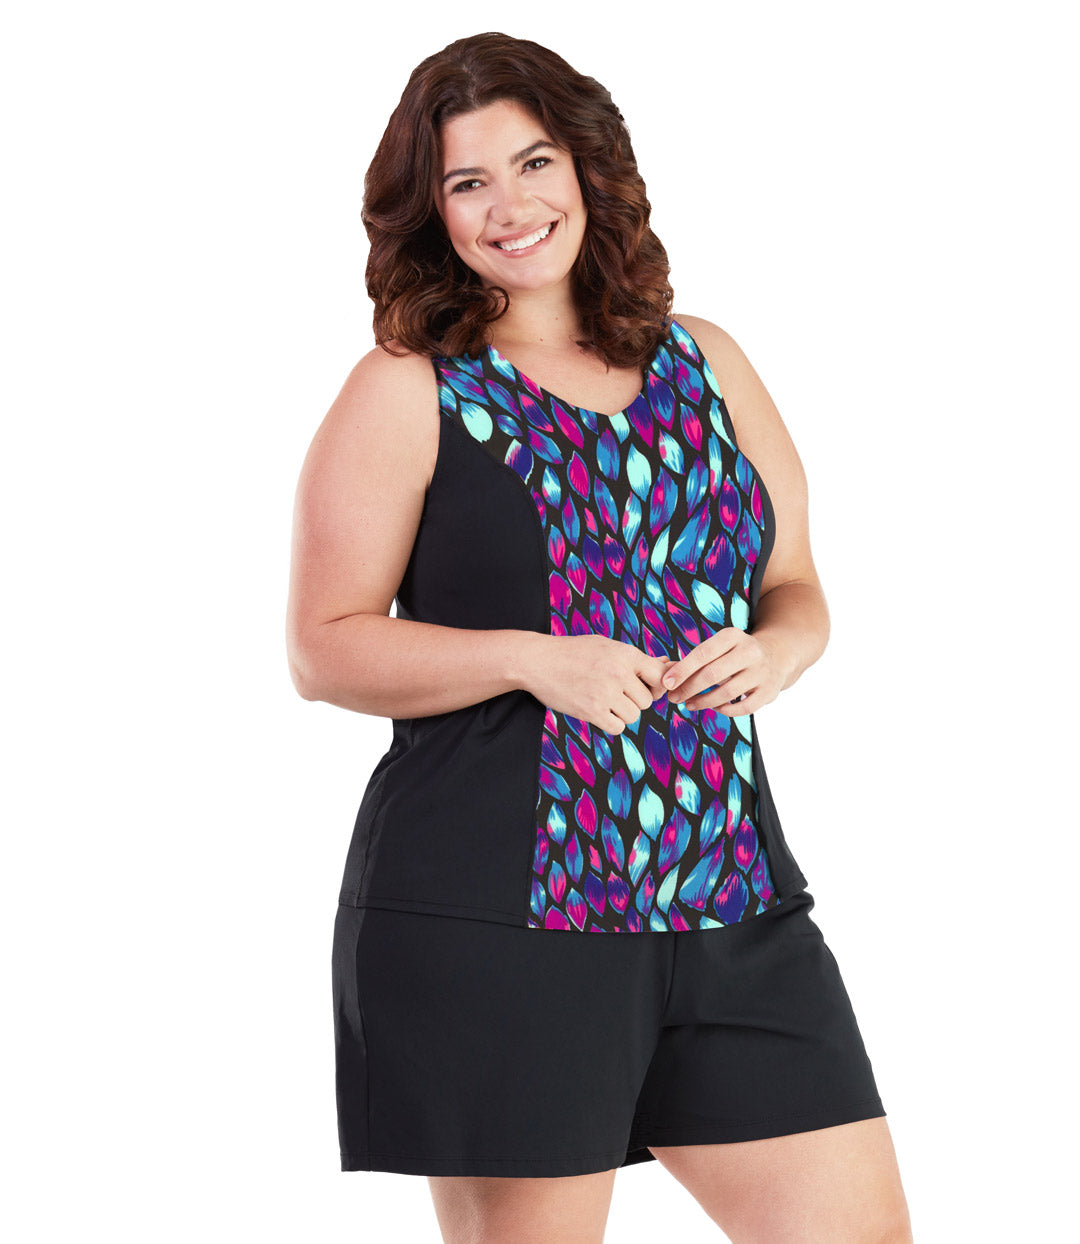 AquaSport Tankini Top in Mermaid Print-Plus Size Swimwear and Swim Separates-SFO Apparel-1X-MERMAID-JunoActive